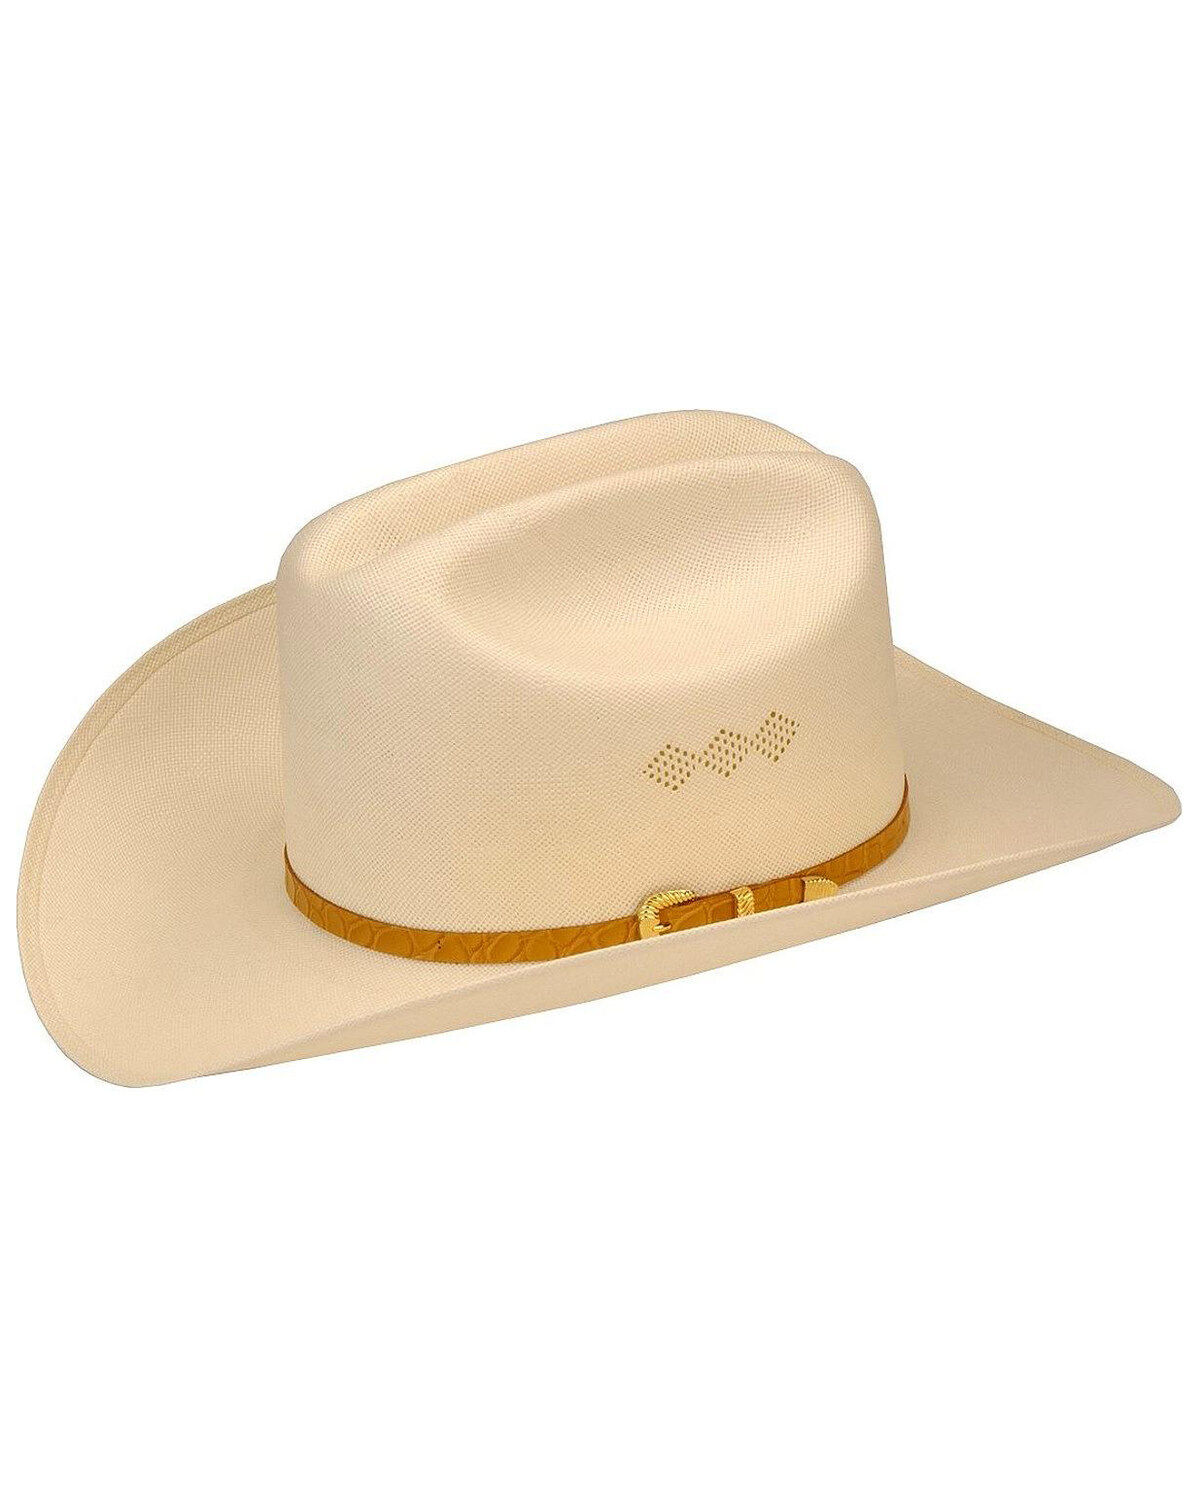 4cf4a273c06f4 Men s Straw Western Hats